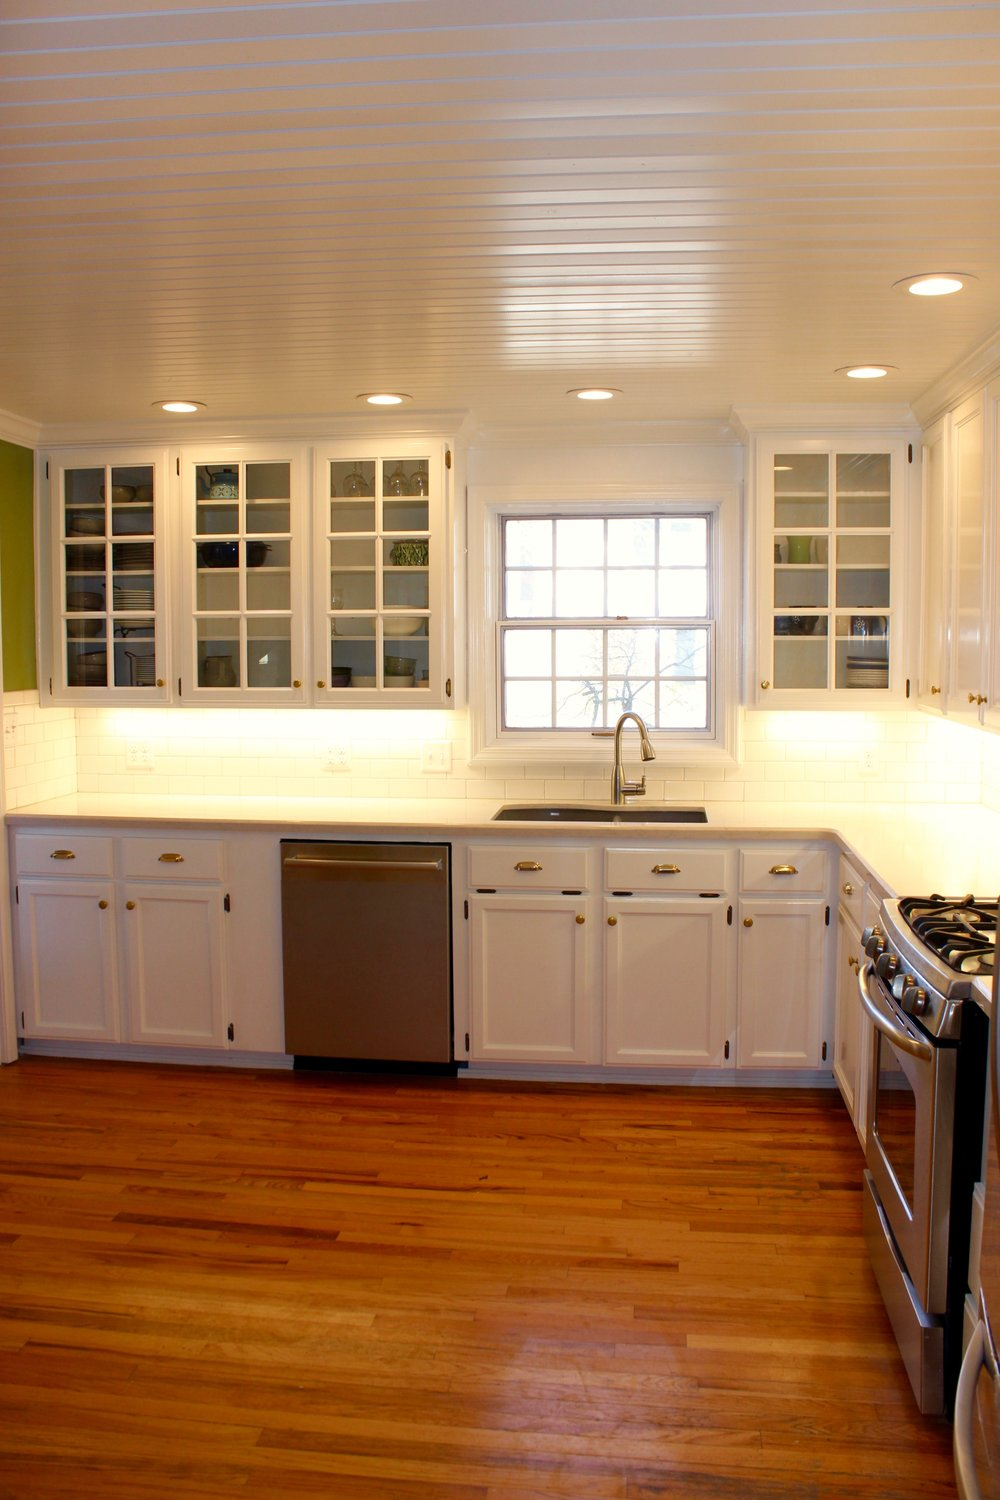 Reitz Builders Verde kitchen remodel 5.jpg